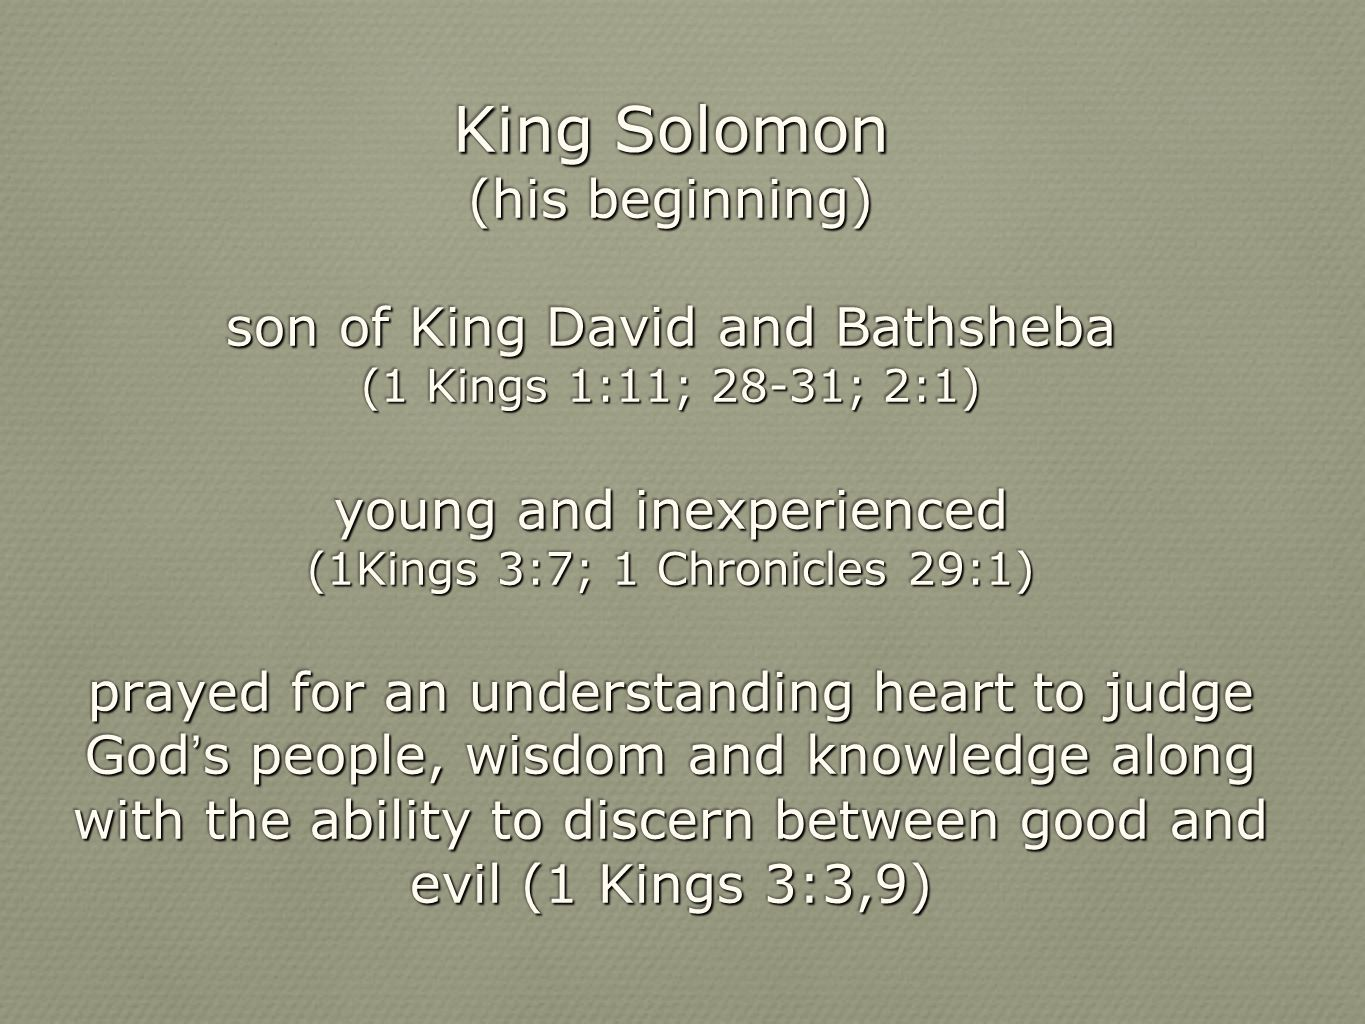 King Solomon (his beginning) son of King David and Bathsheba (1 Kings 1:11; 28-31; 2:1) young and inexperienced (1Kings 3:7; 1 Chronicles 29:1) prayed